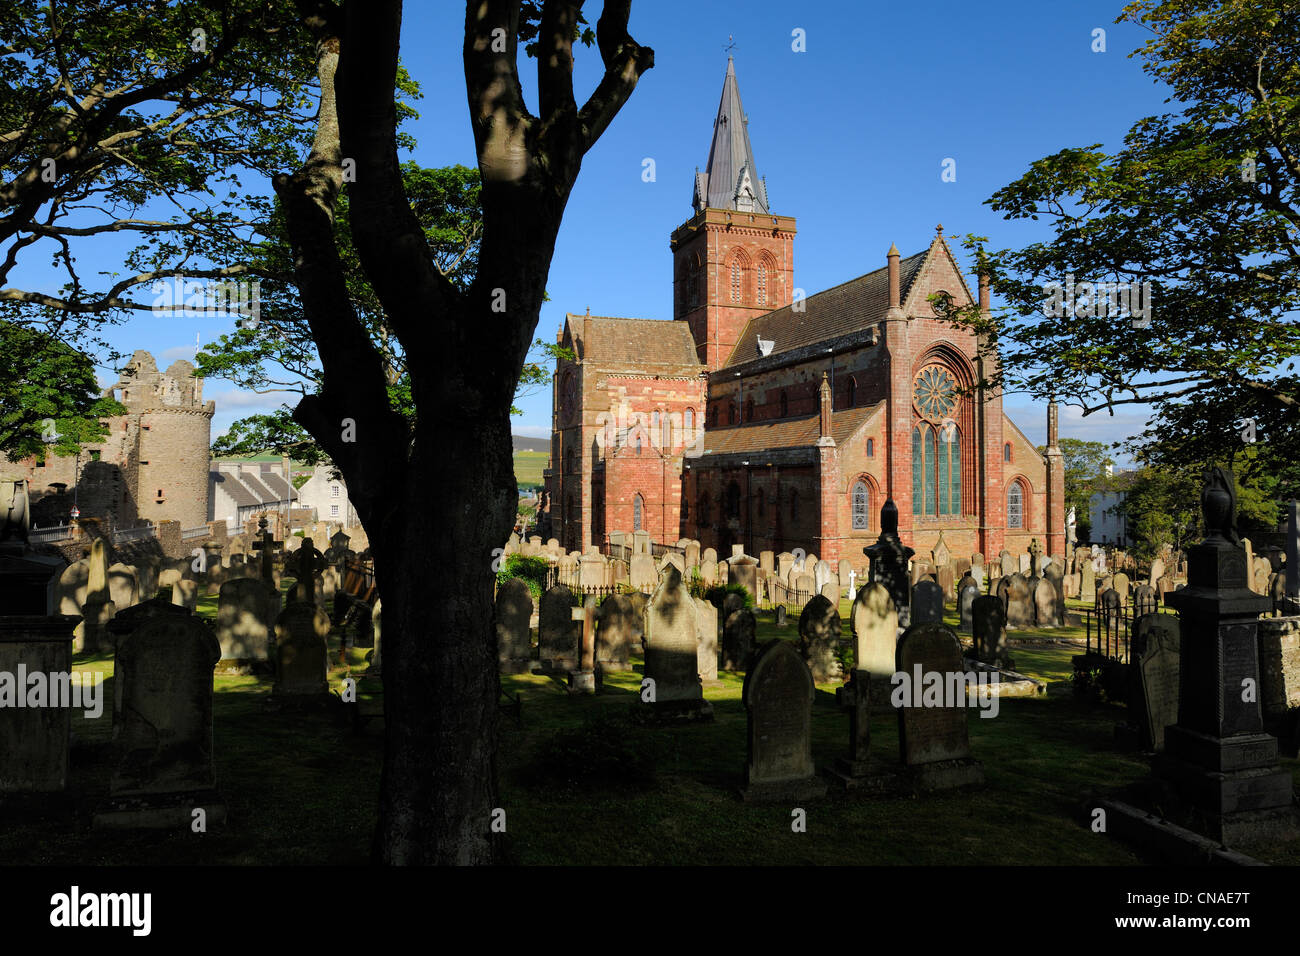 United Kingdom, Scotland, Orkney Islands, Mainland, town of Kirkwall, Saint-Magnus cathedral - Stock Image